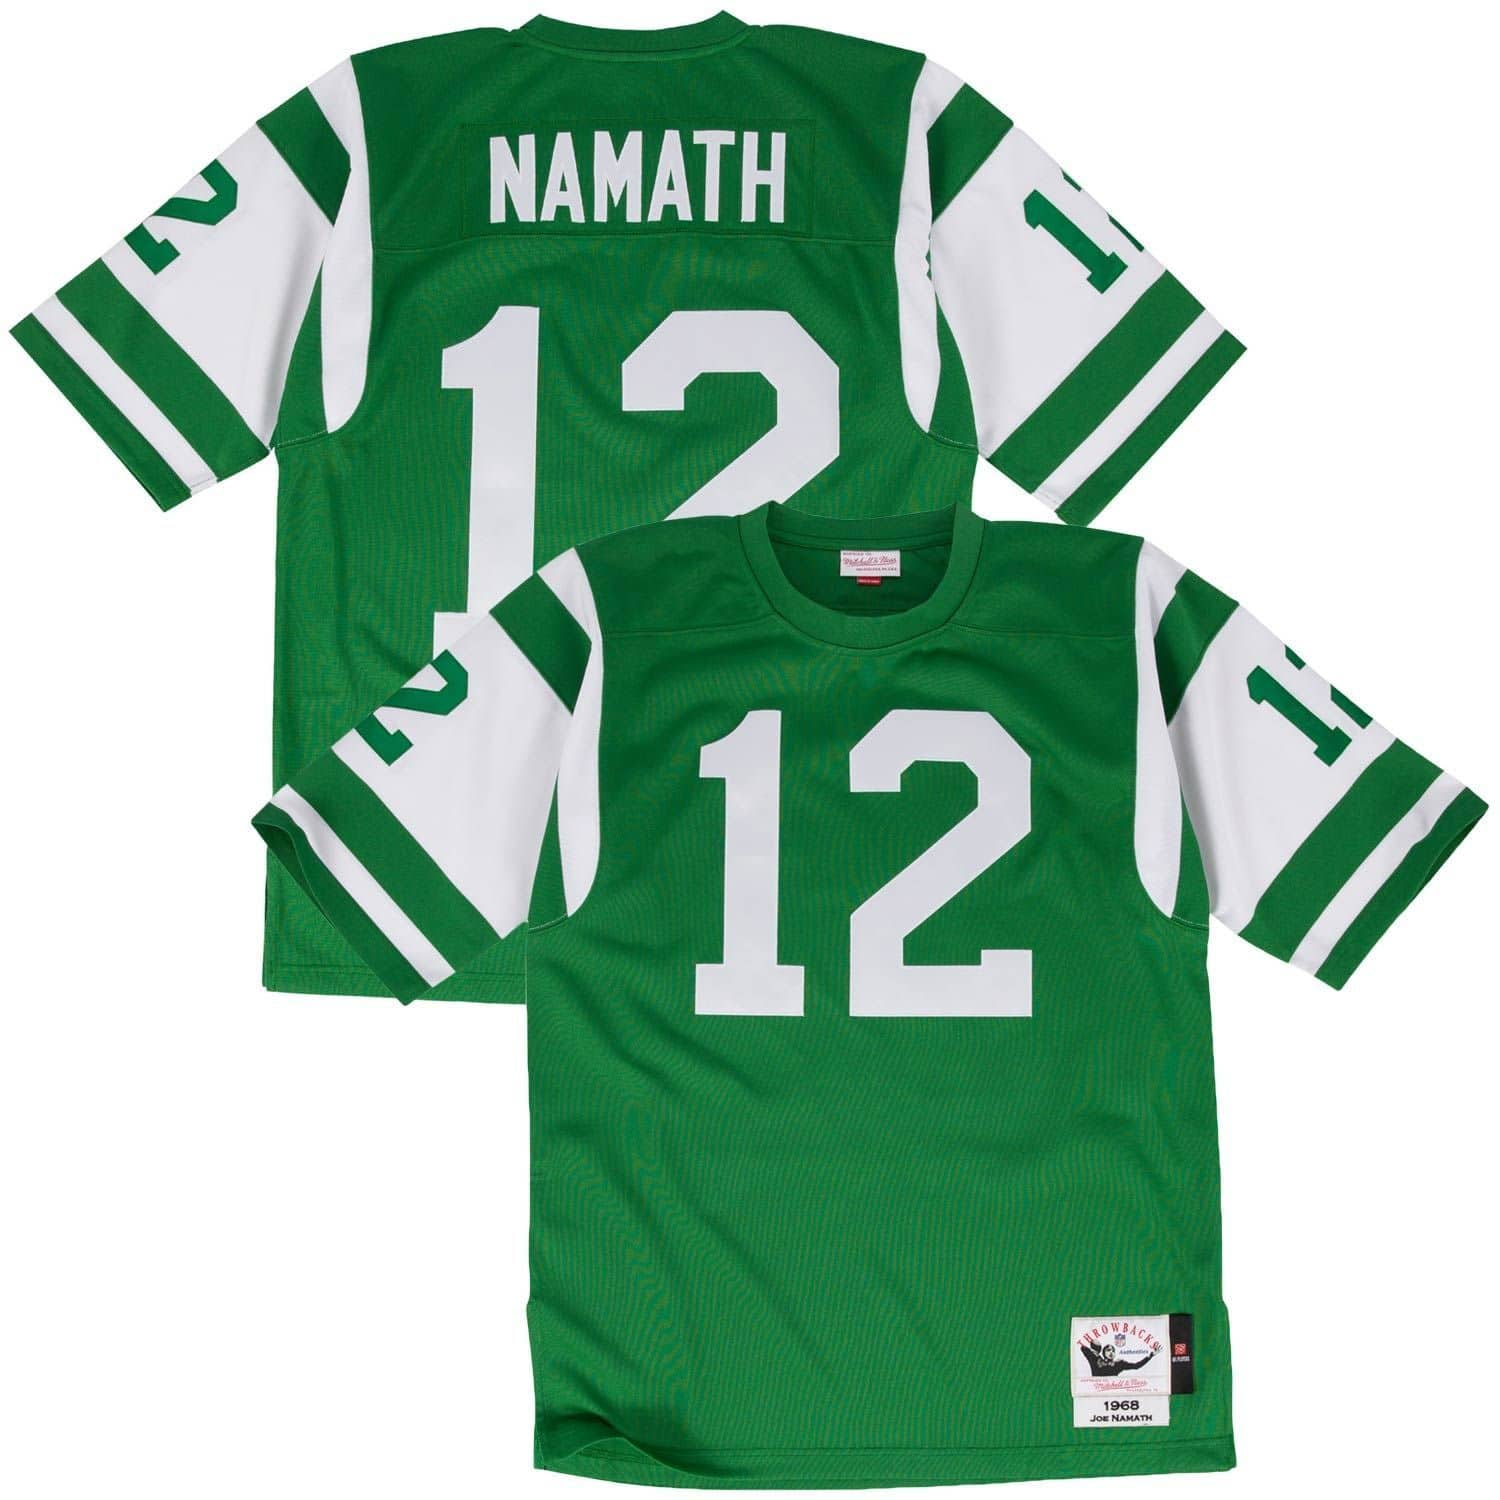 buy popular 95f18 e5a9d Joe Namath #12 New York Jets 1968 Authentic Throwback NFL Jersey